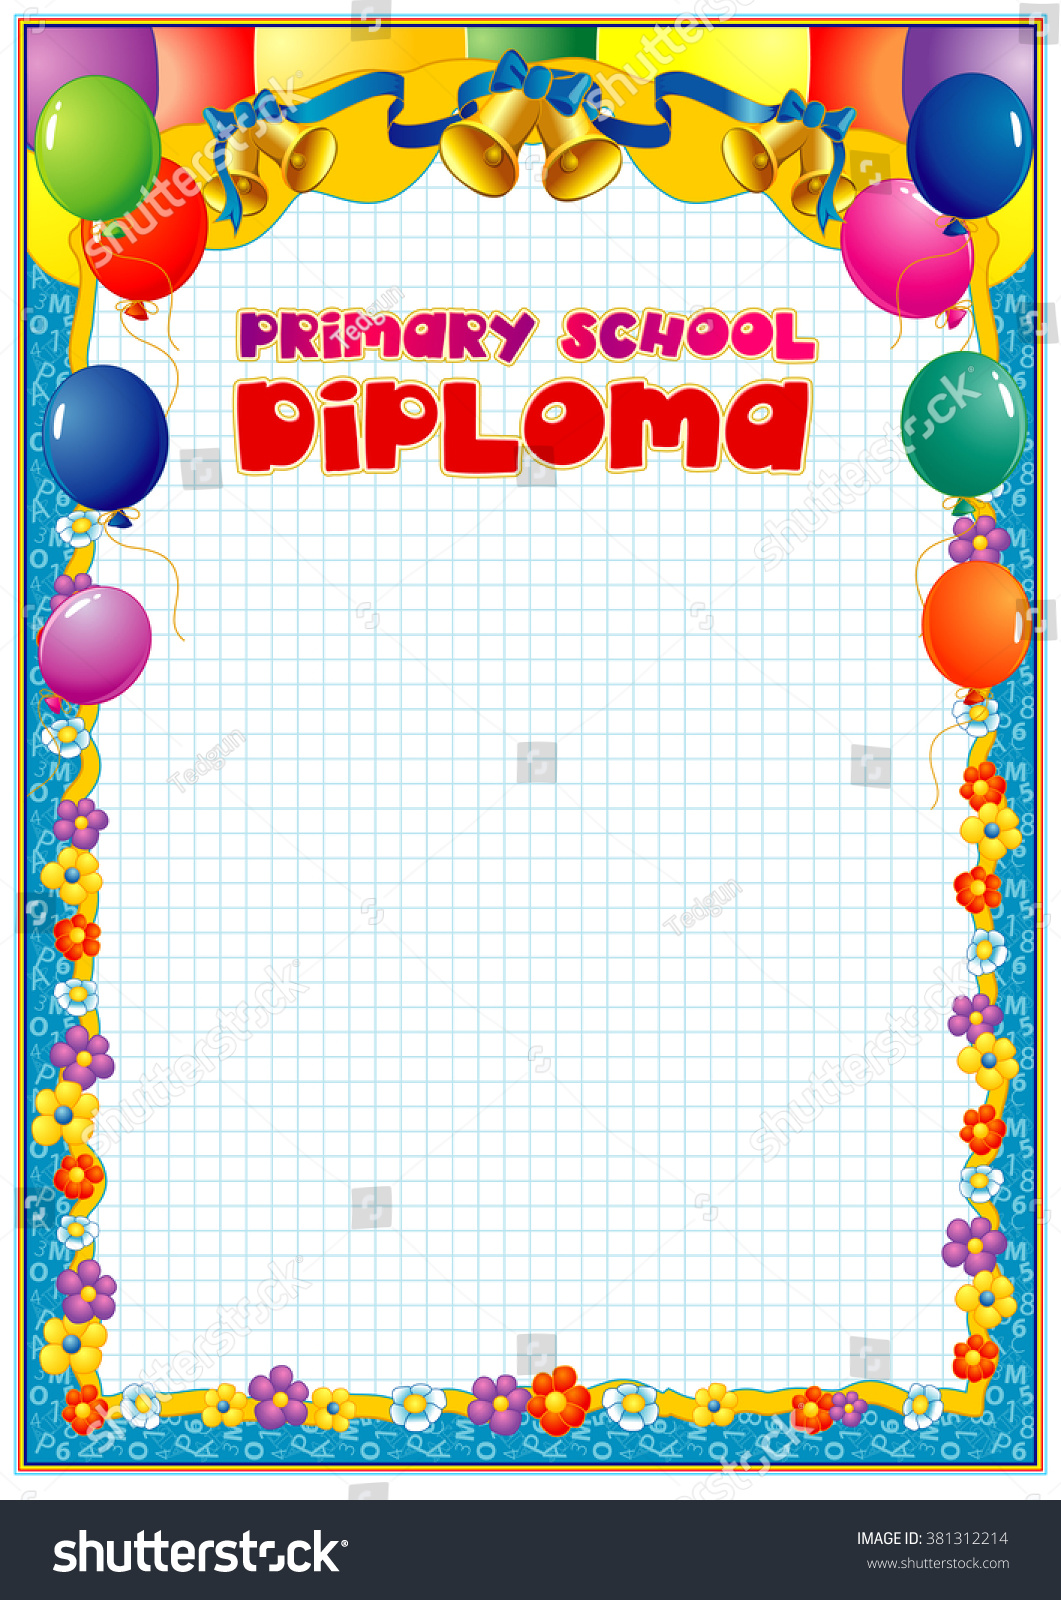 primary school diploma stock vector shutterstock primary school diploma